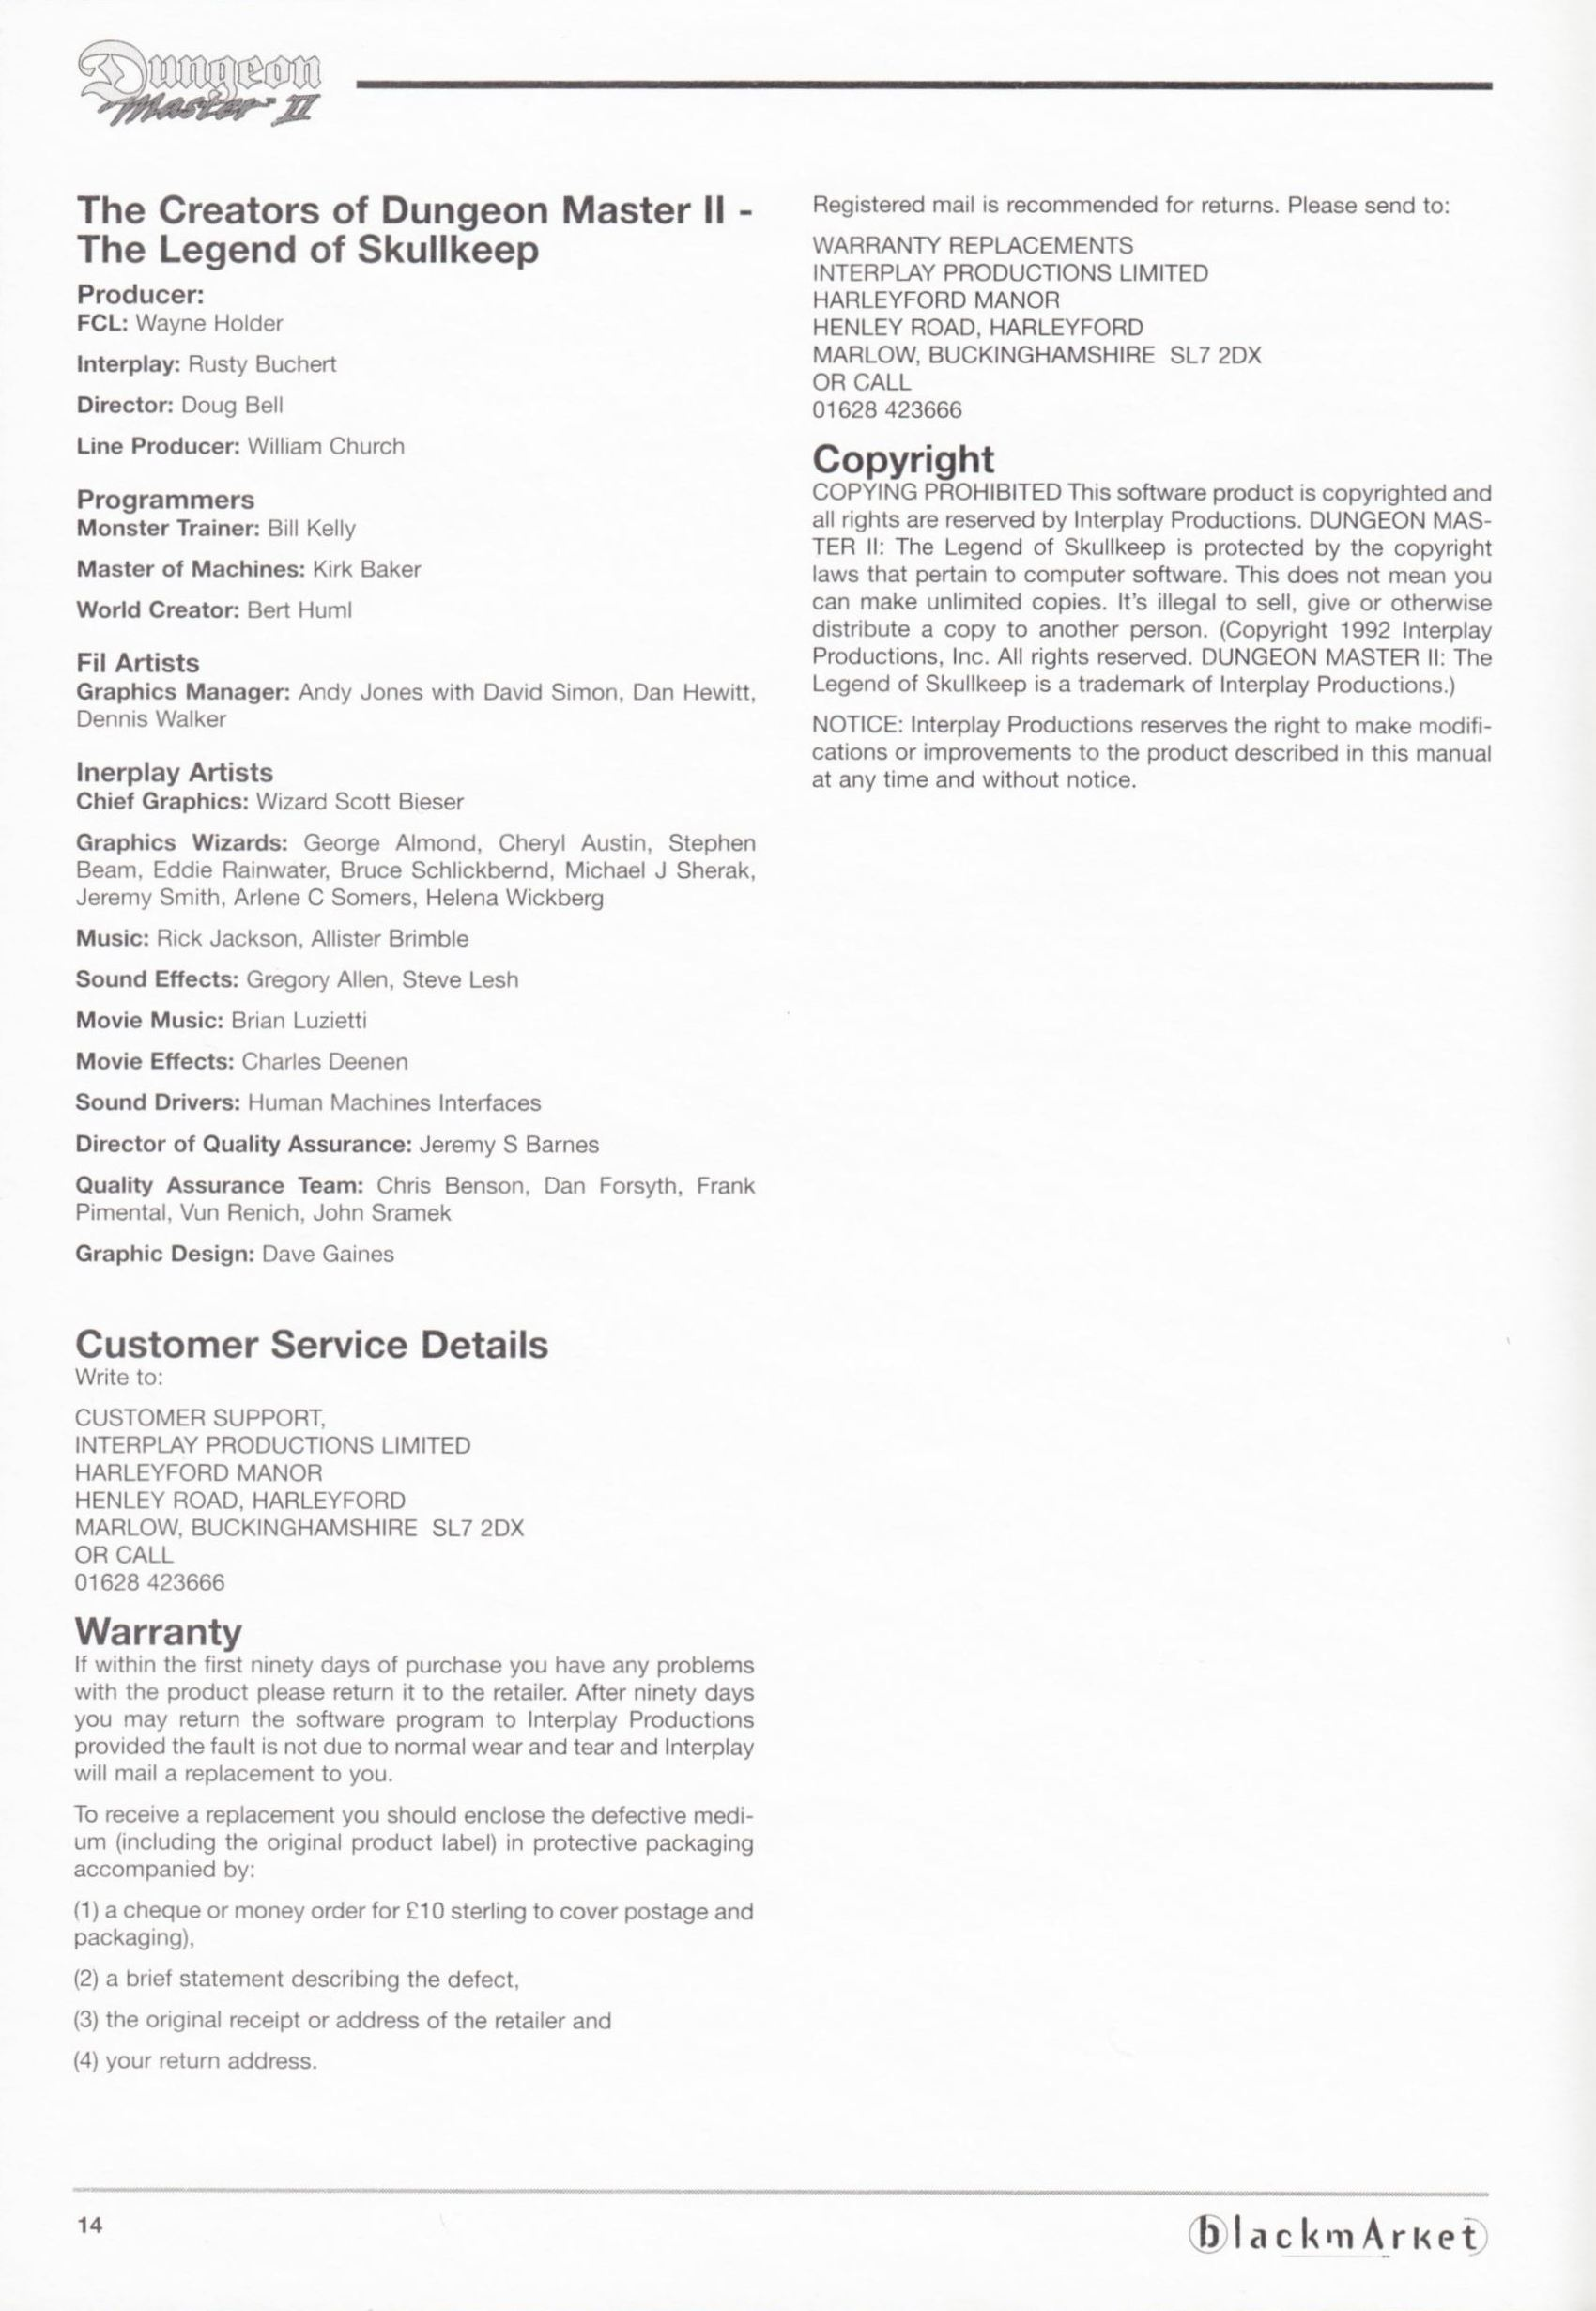 Game - Dungeon Master II - DE - PC - Blackmarket With Manual - Manual - Page 016 - Scan